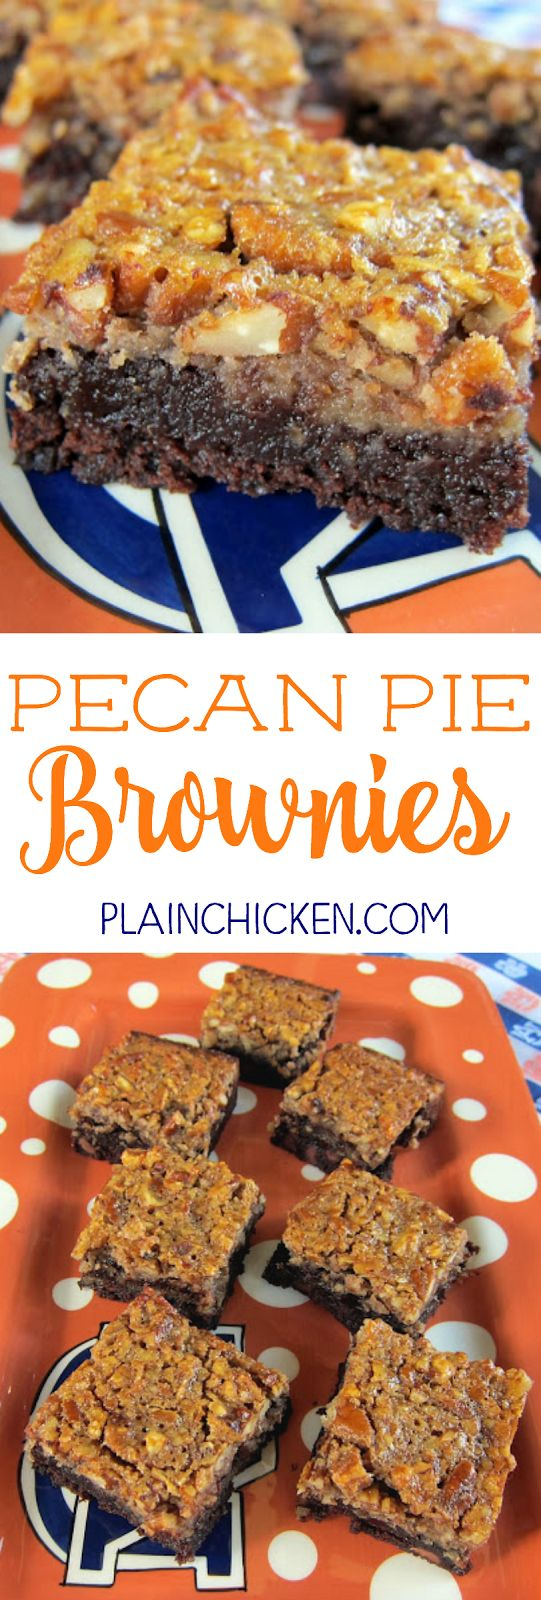 These brownies are amazing. These are great for tailgating or even Thanksgiving dessert. How can you go wrong with pecan pie layere...